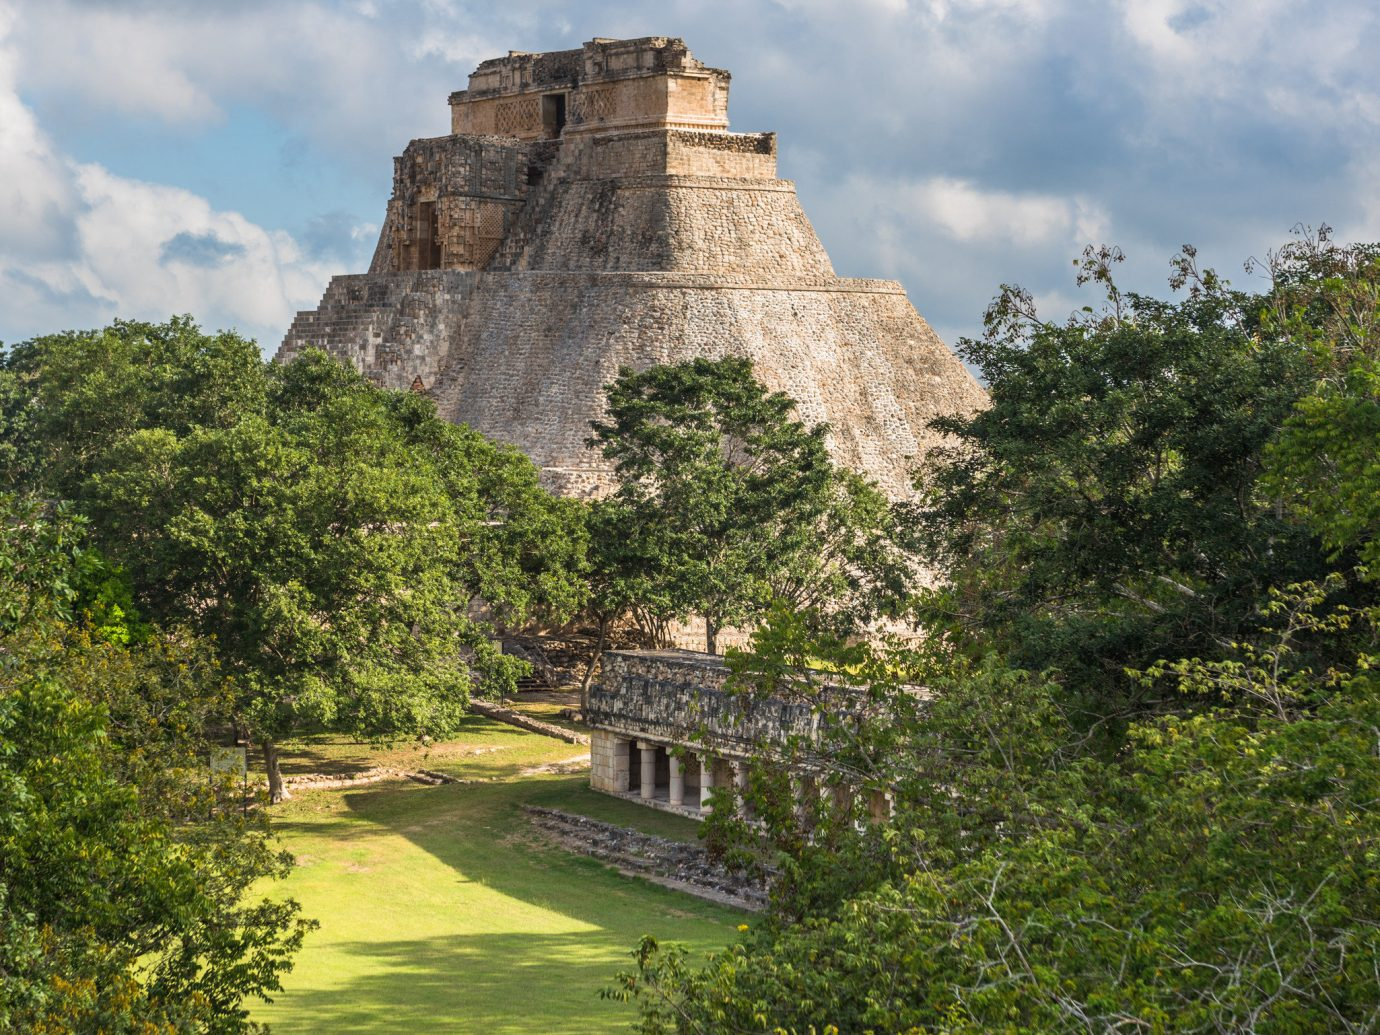 Mexico Trip Ideas Weekend Getaways tree outdoor grass mountain hill rock Ruins landscape castle rural area valley château park surrounded bushes lush